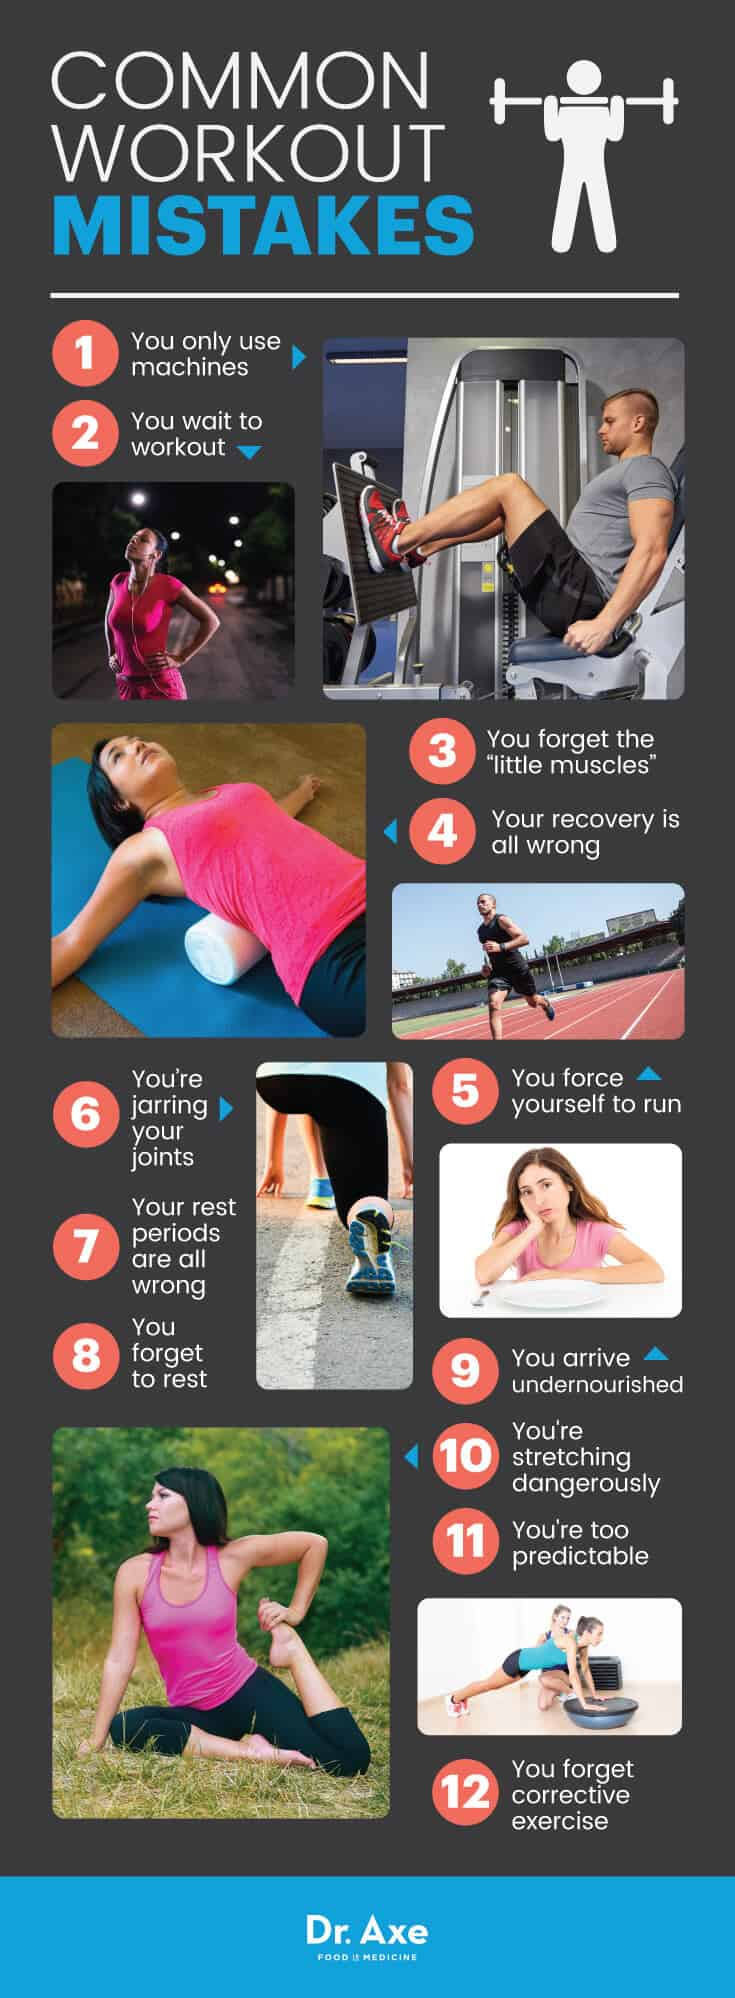 Workout mistakes - Dr. Axe